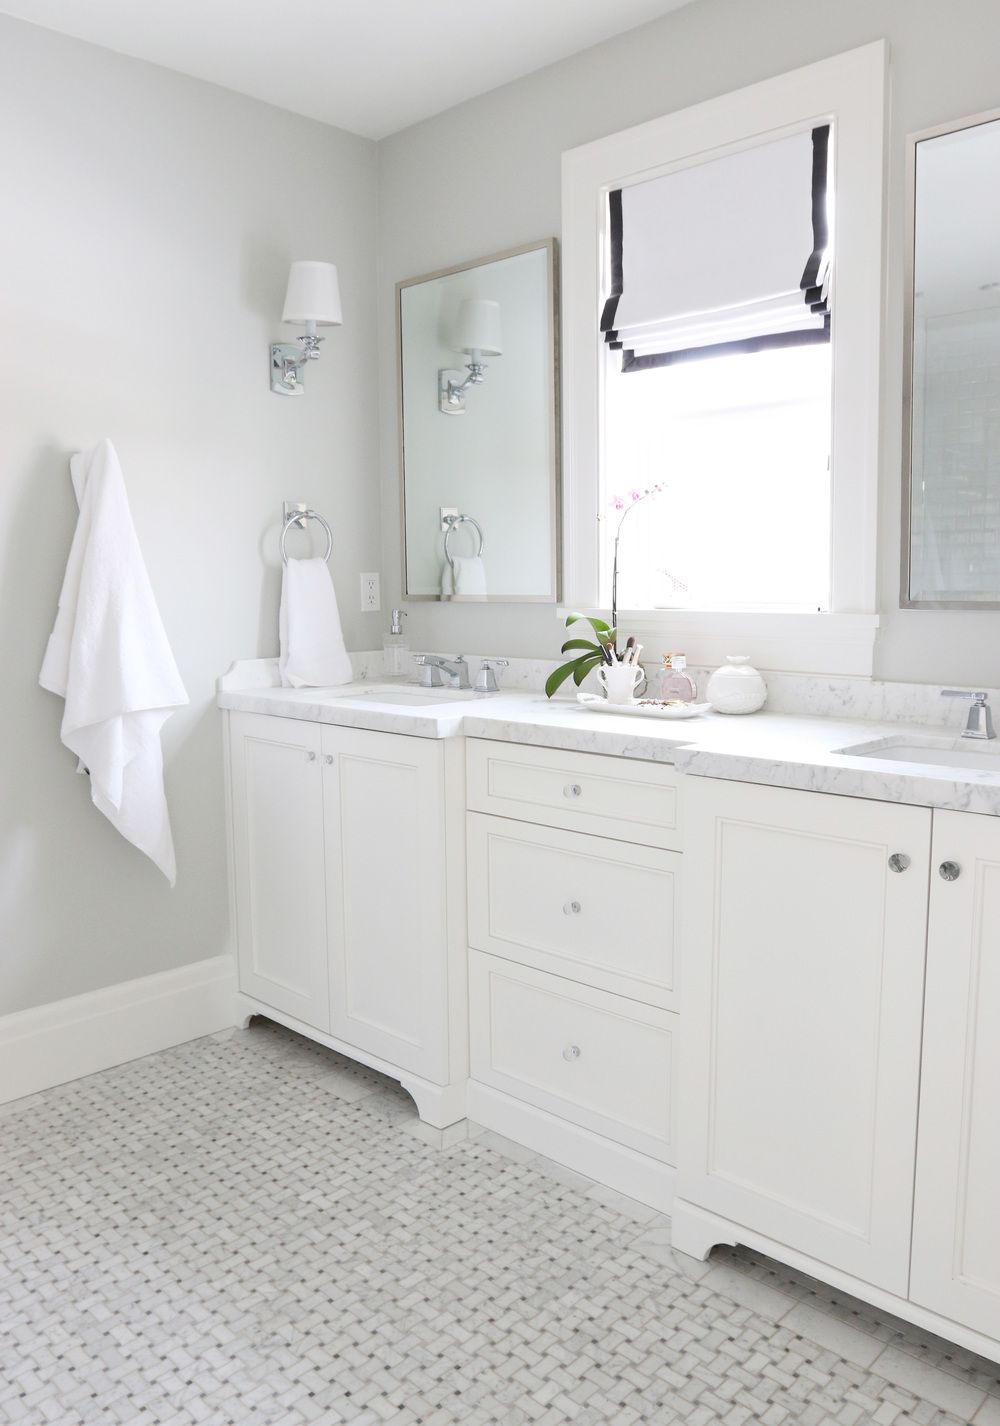 Paint color is benjamin moore moonshine another great and versatile color stunning design from studio mcgee